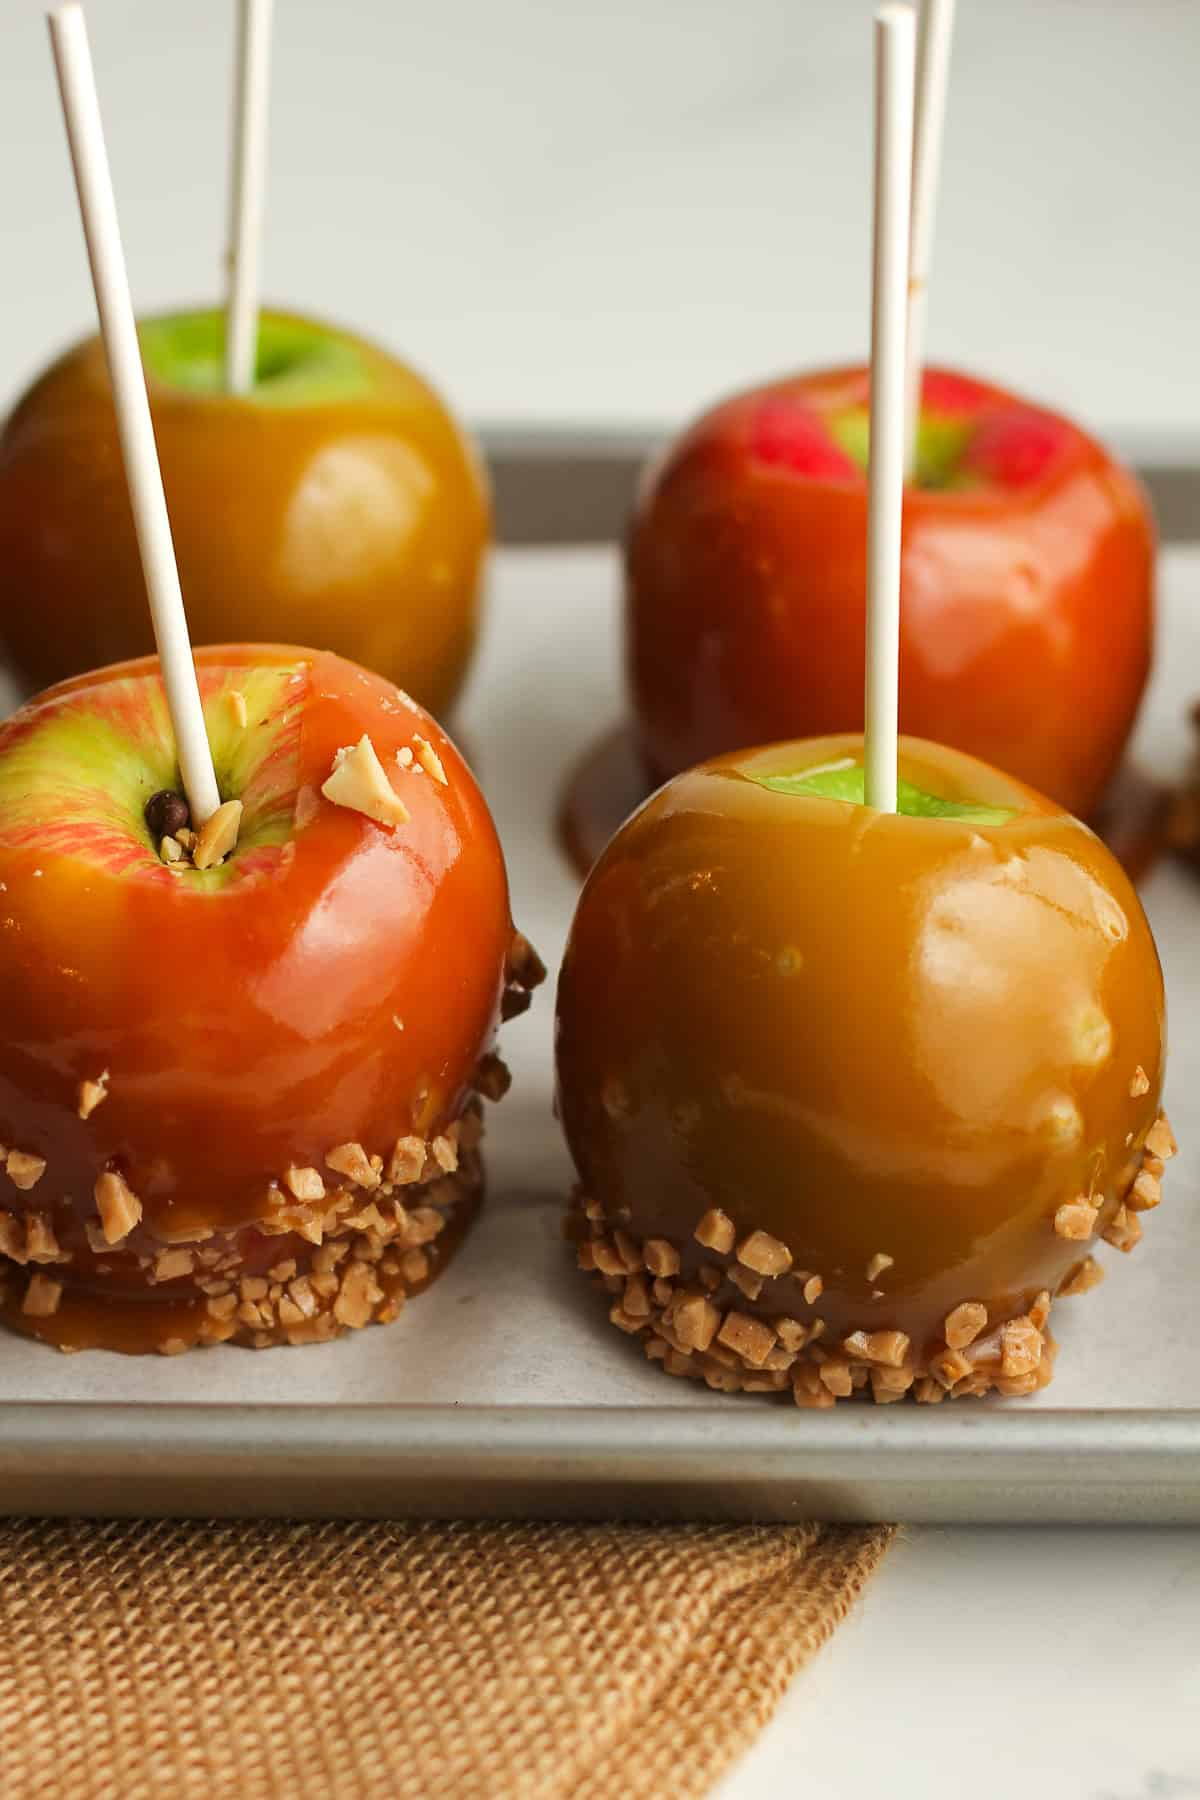 Side view of a pan with caramel apples.